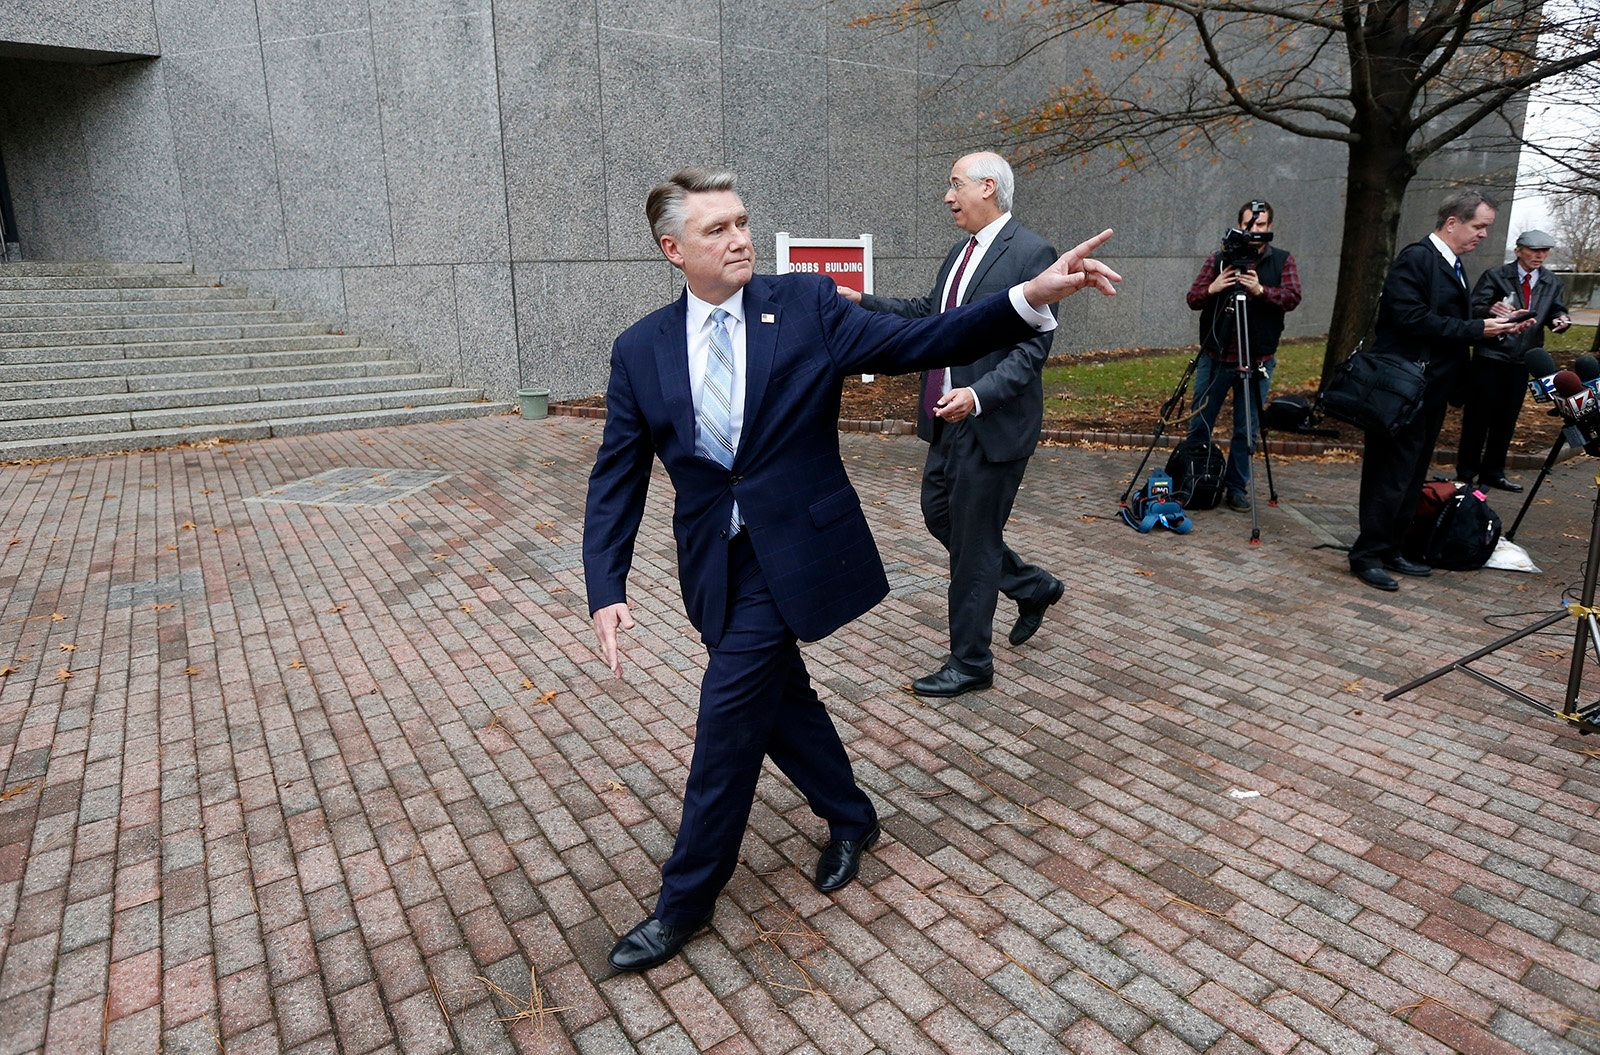 Republican Mark Harris, left, and his attorney David Freedman leave after speaking with the media following a meeting with state election investigators on Thursday, Jan. 3, 2019 at the Dobbs Building in Raleigh, N.C. (Ethan Hyman/Raleigh News & Observer/TNS via Getty Images)